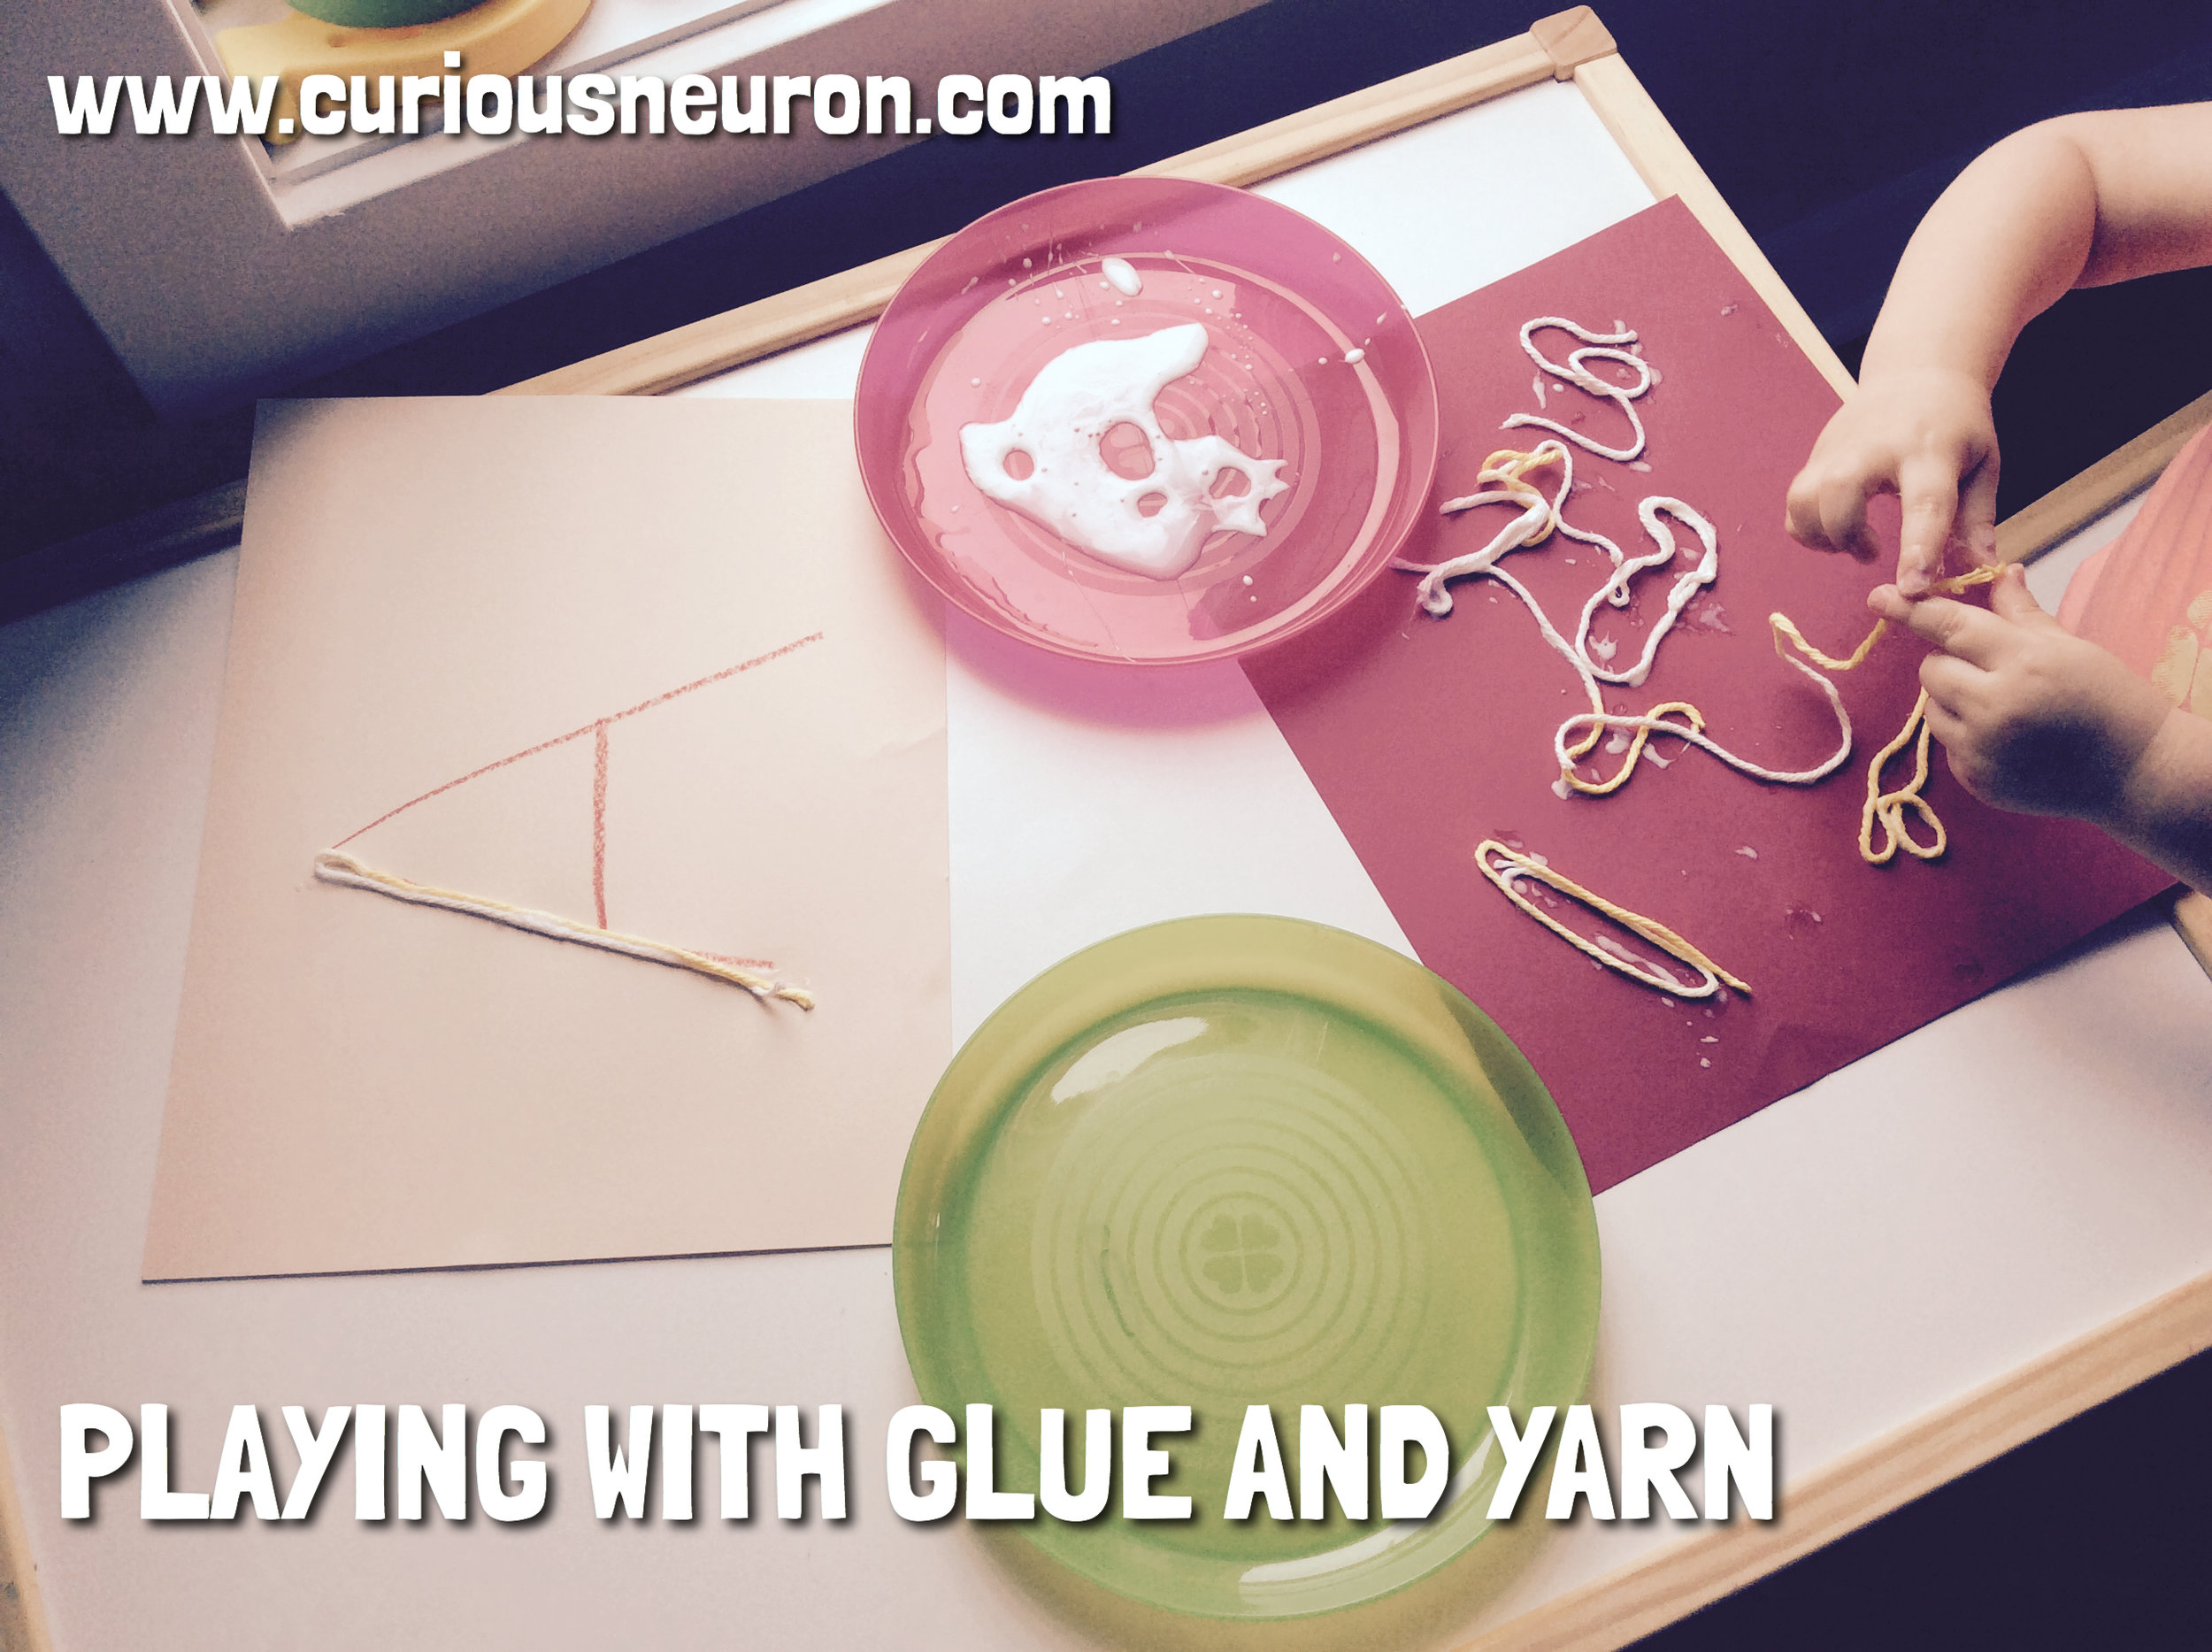 Add some liquid glue to a plate and use a paintbrush and some yarn. If you are doing this activity with a toddler, you can simply have them glue their yarn to paper and create art with it. With older children who are learning letters, shapes or counting you can also draw out the letters or shapes on their paper and have them glue their yarn over it.